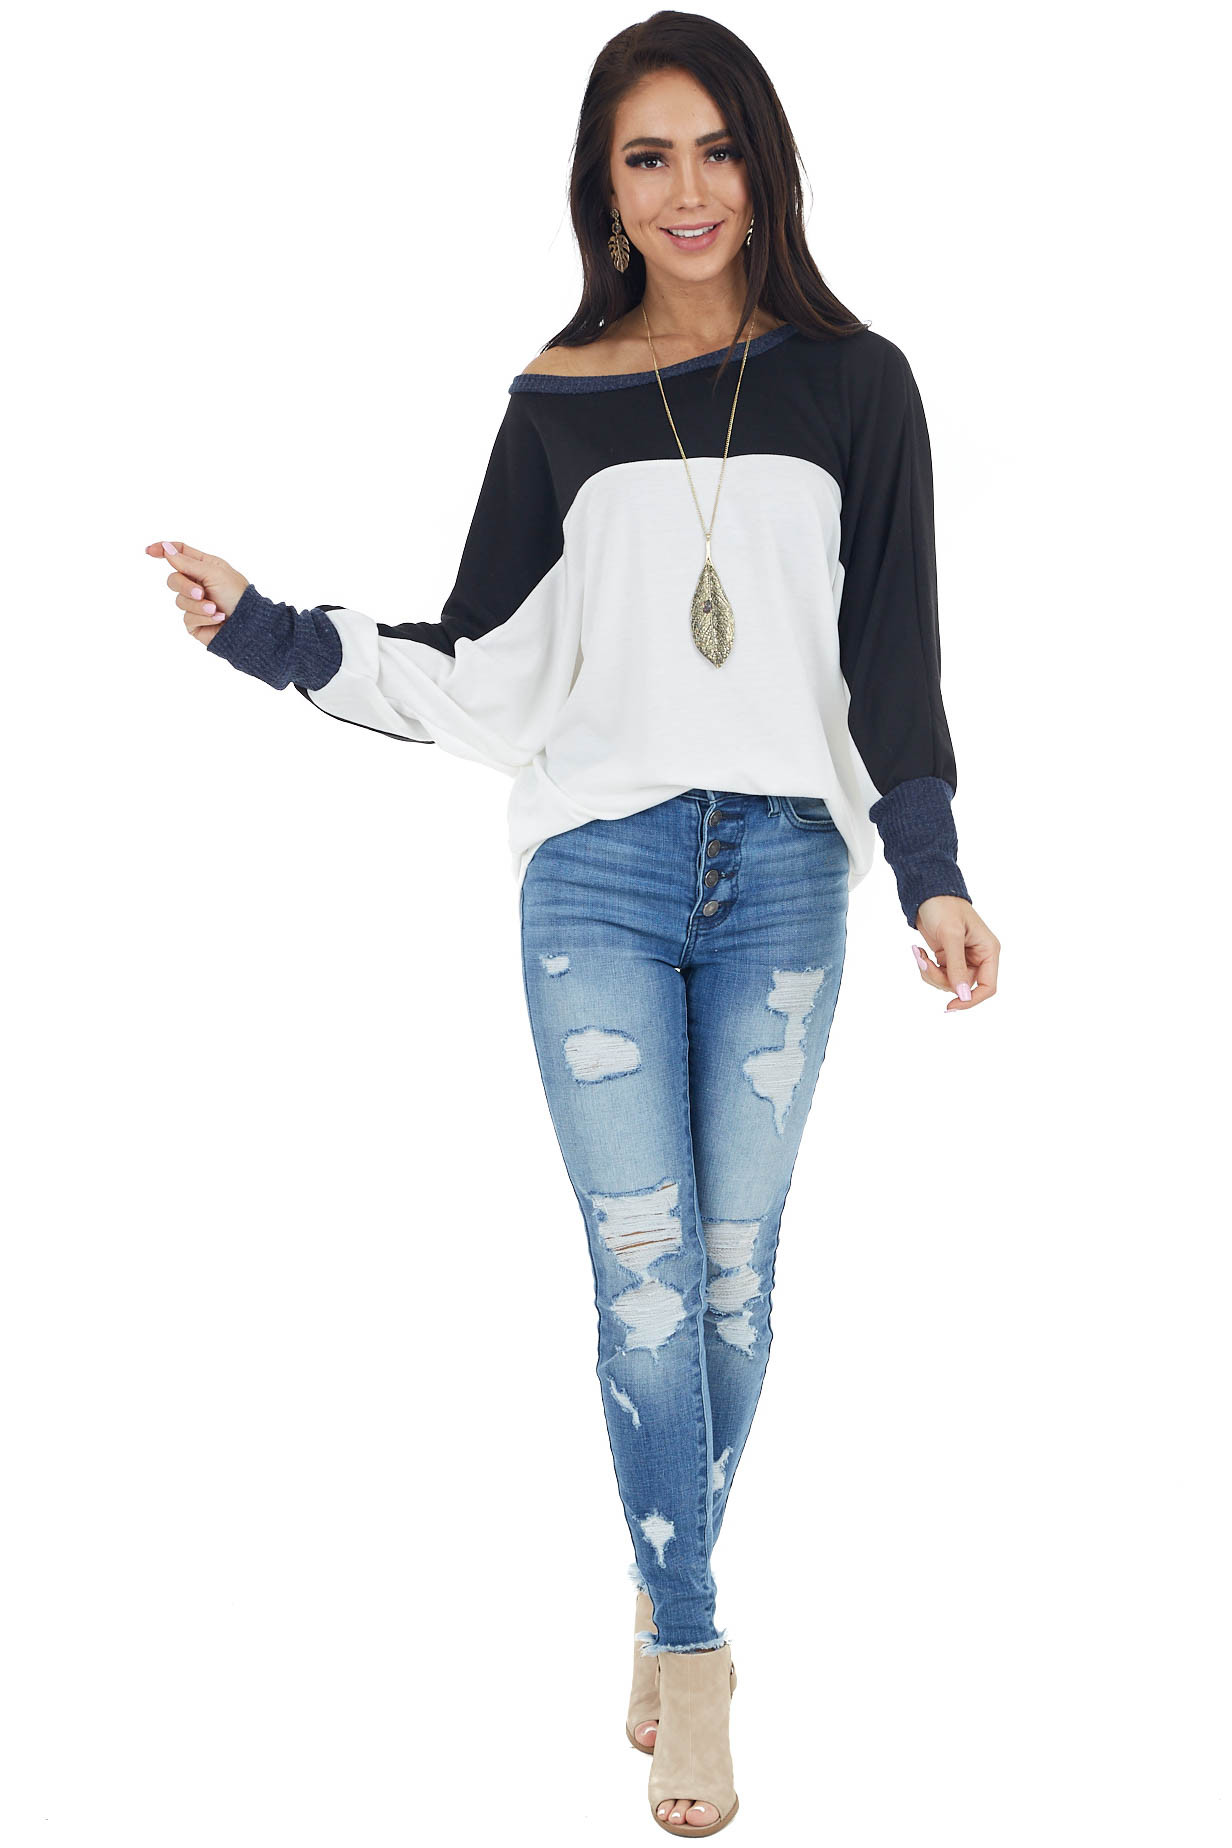 Ivory and Black Colorblock Knit Top with Long Dolman Sleeves